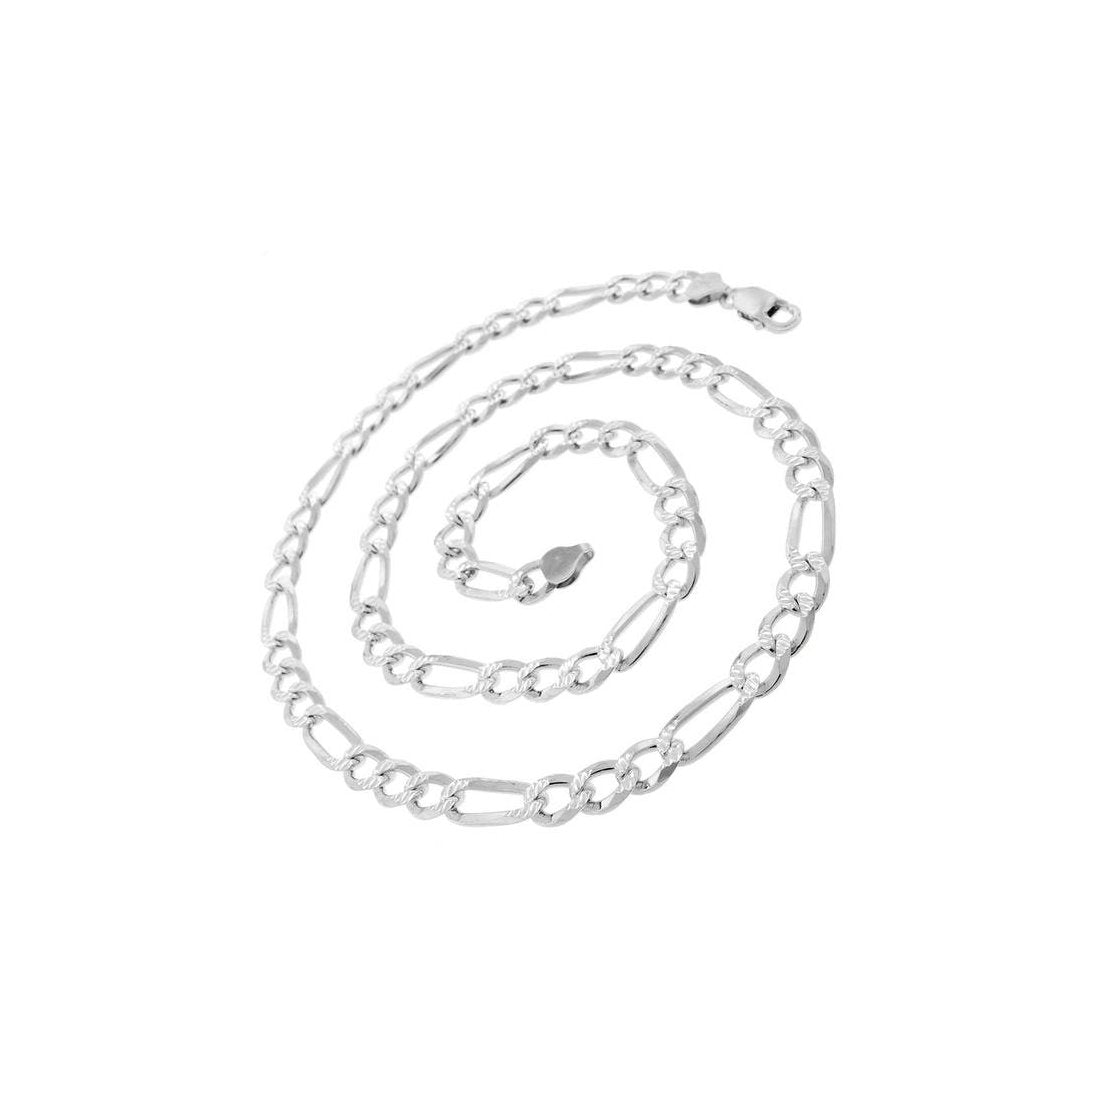 "5MM 120 Pave Figaro Chain .925 Solid Sterling Silver Available In 7""-26"" Inches"